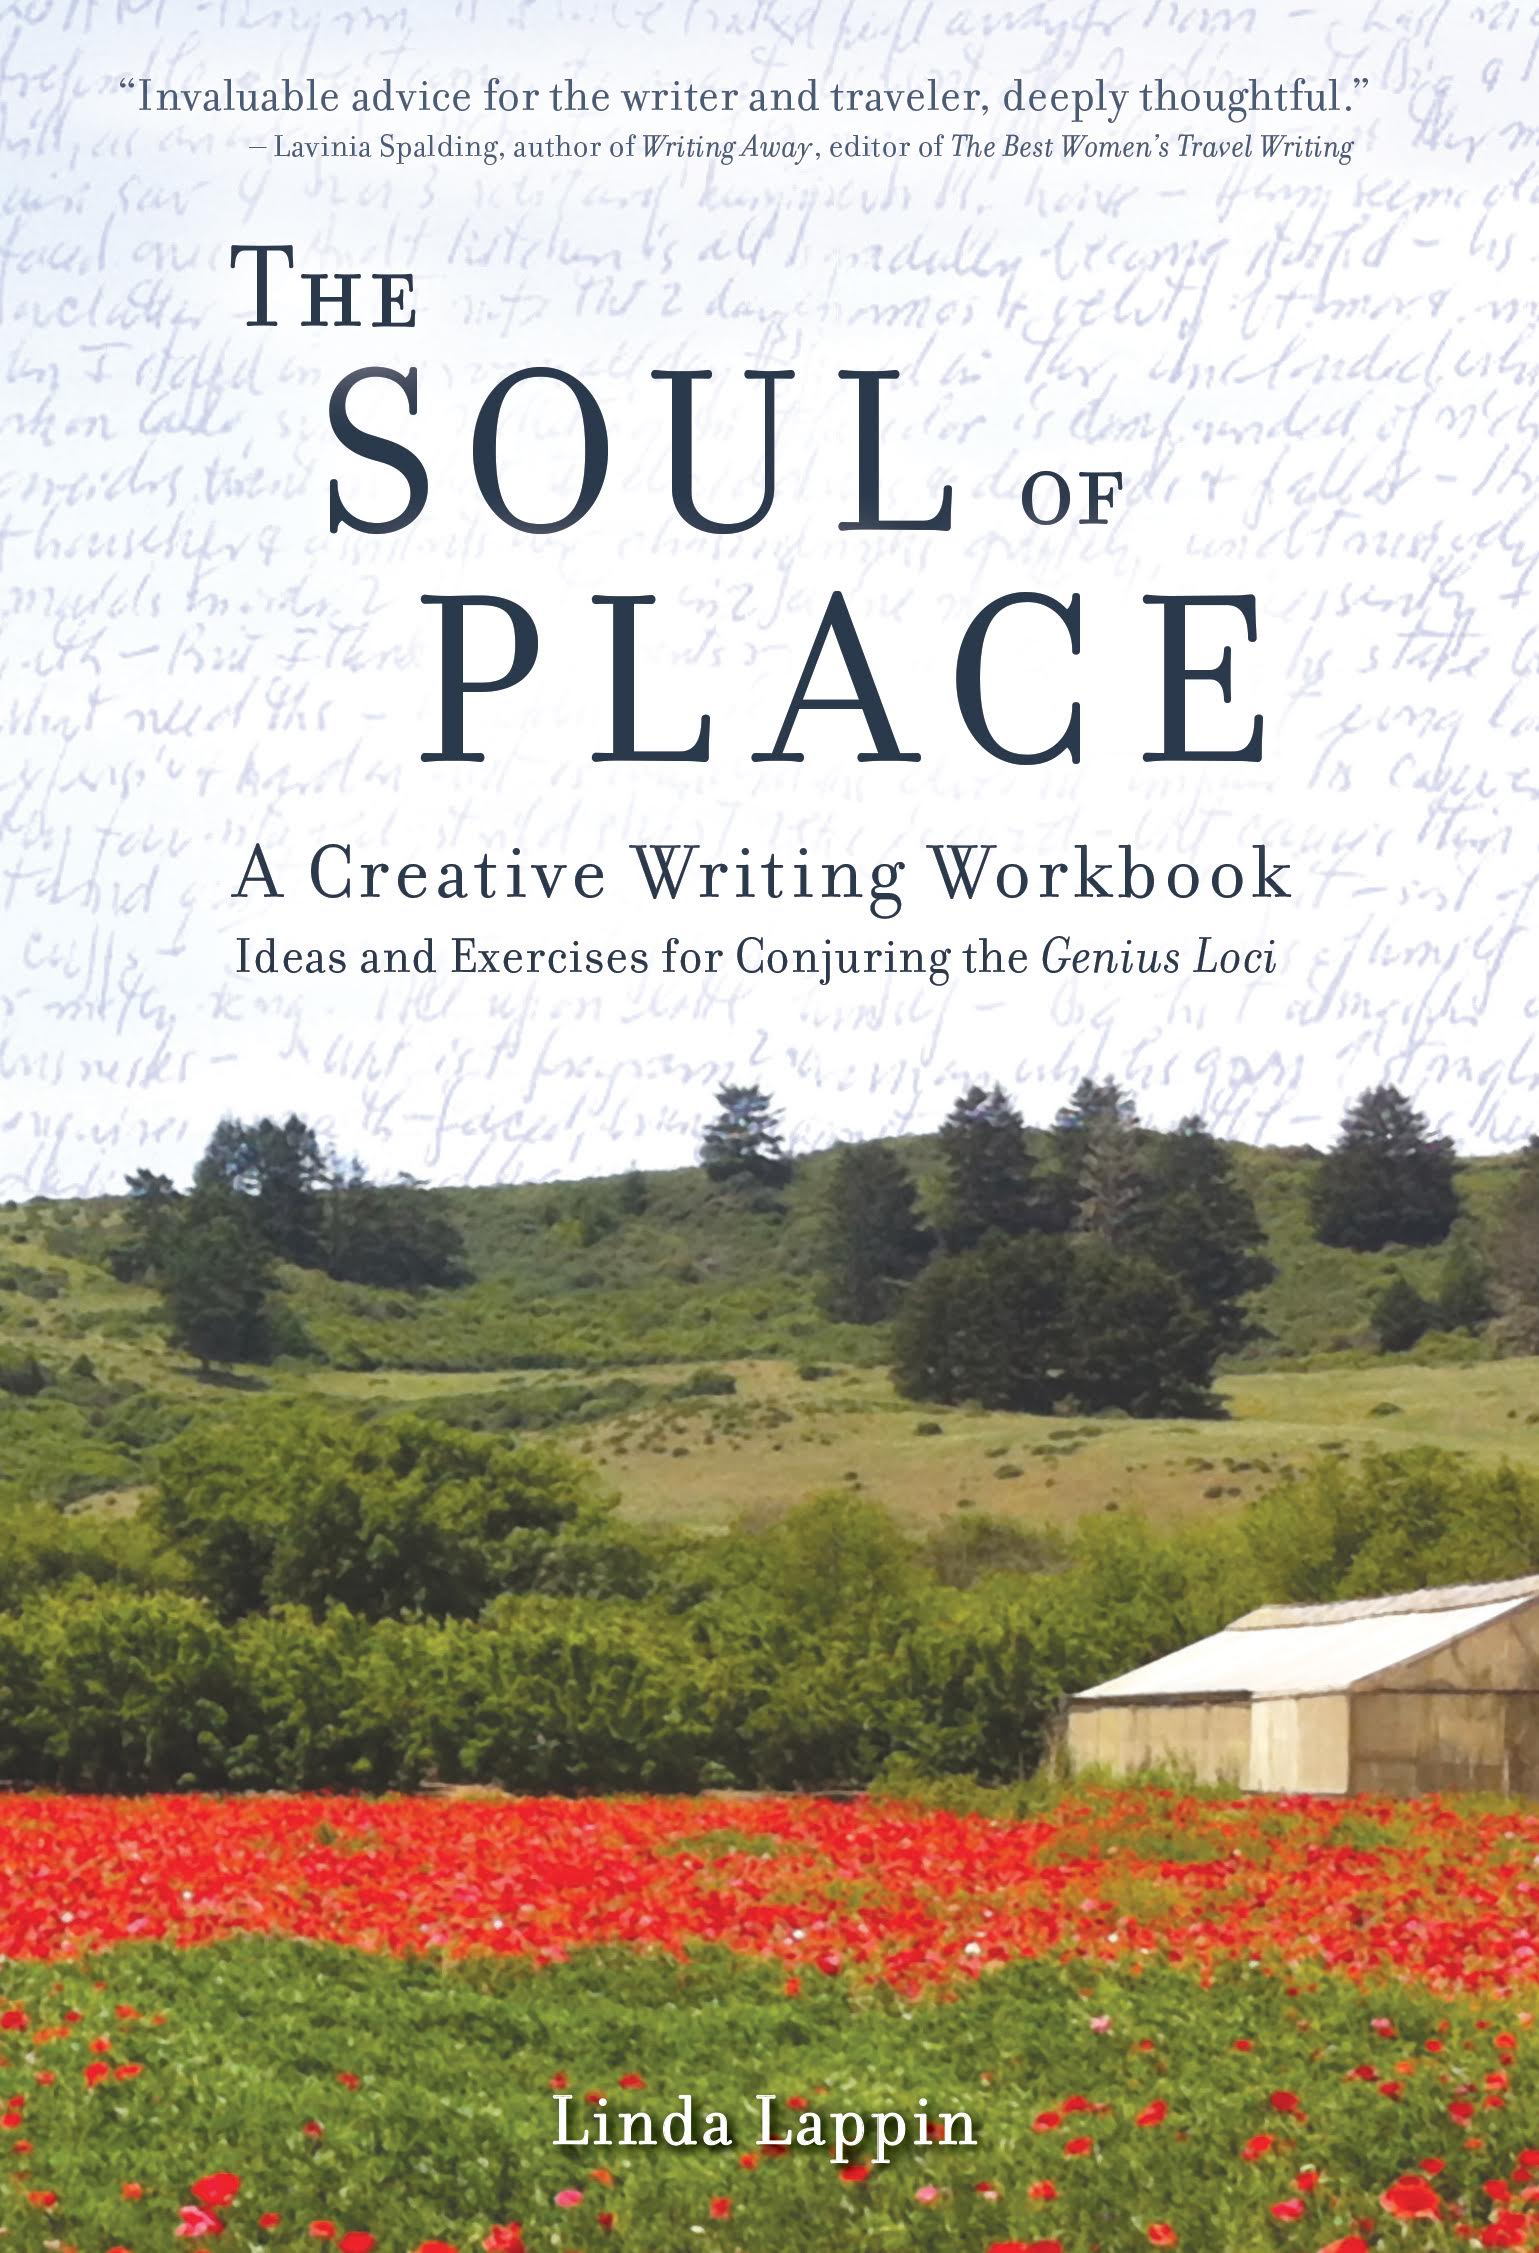 Linda Lappin and The Soul of Place - A Creative Writing Workbook